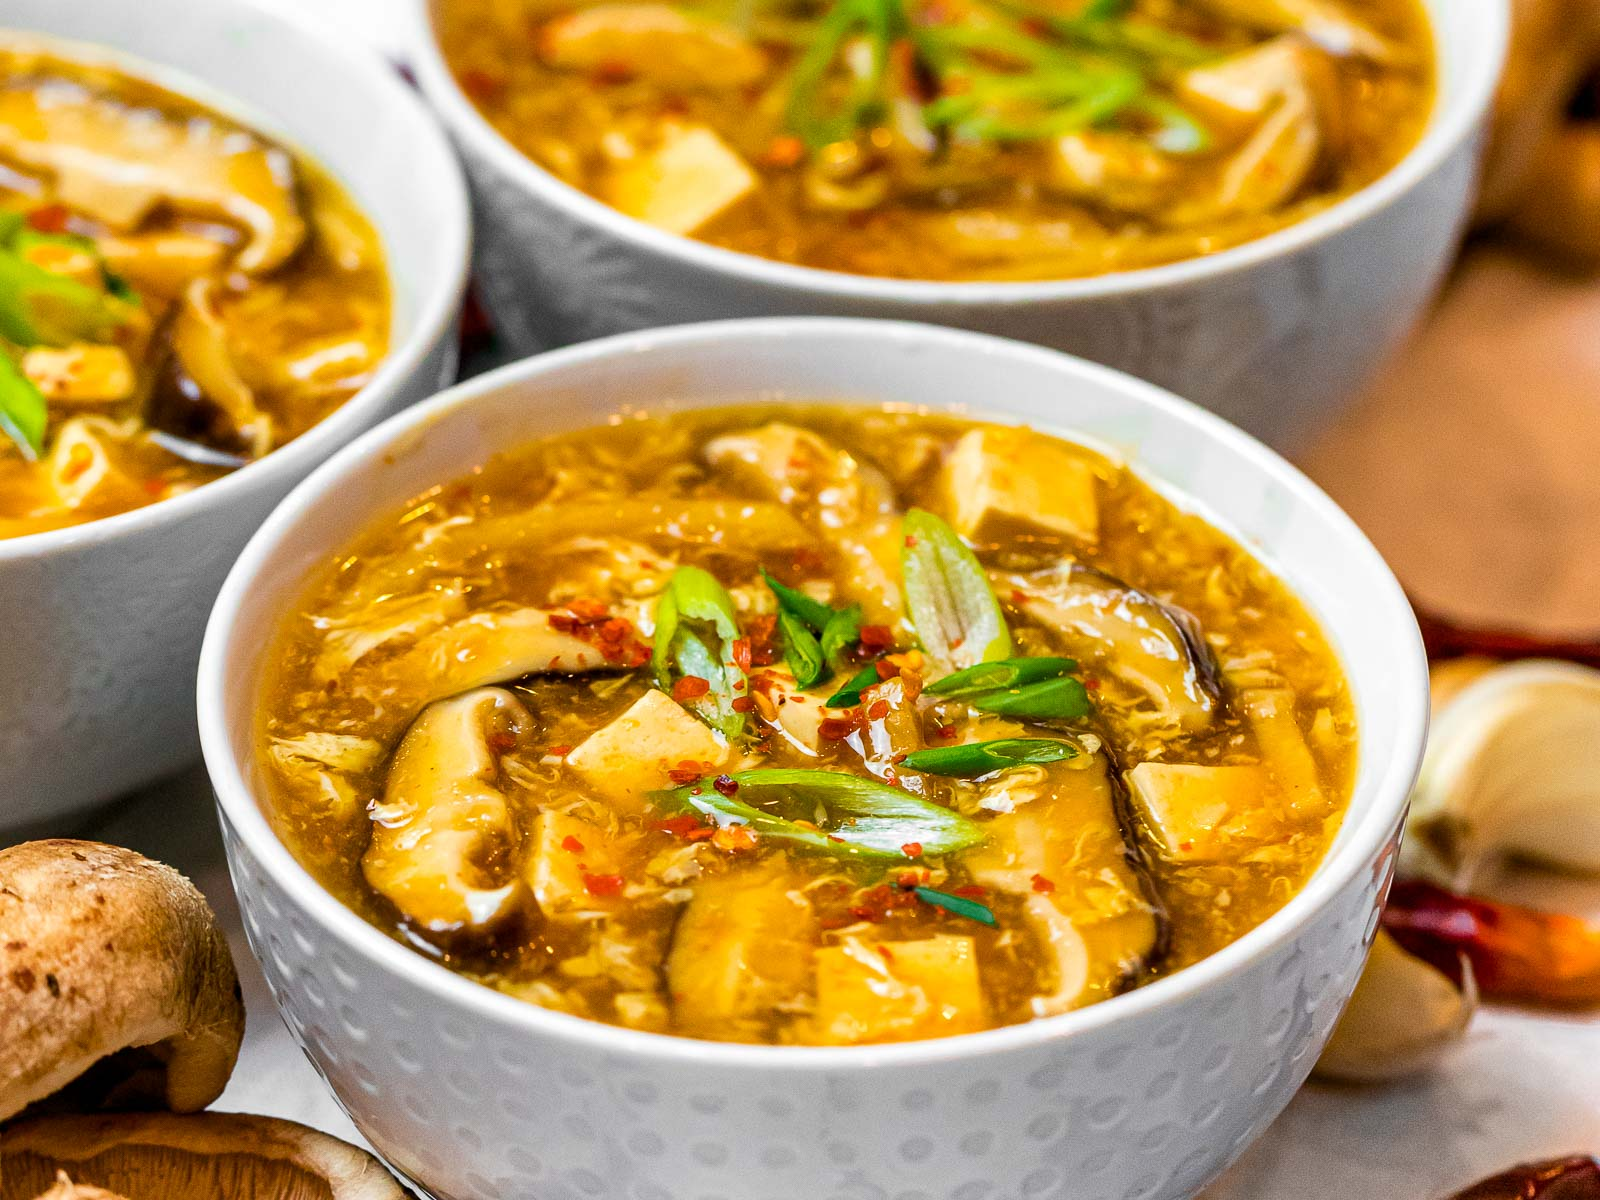 Chinese hot and sour soup with mushrooms, tofu, scallions, and red pepper flakes